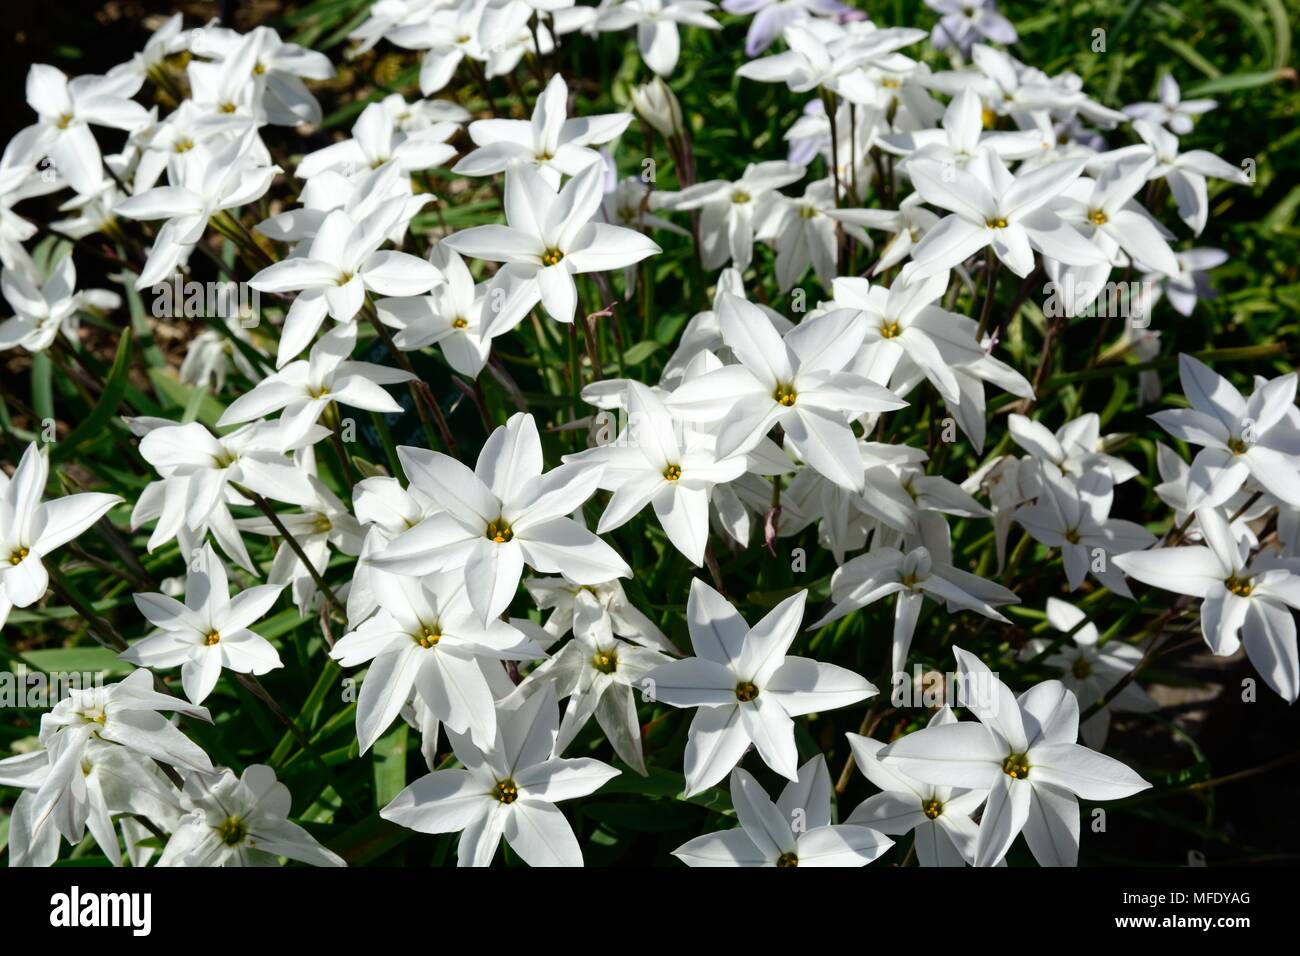 Ipheion alberto castillo or starflower white scented star shaped ipheion alberto castillo or starflower white scented star shaped flowers mightylinksfo